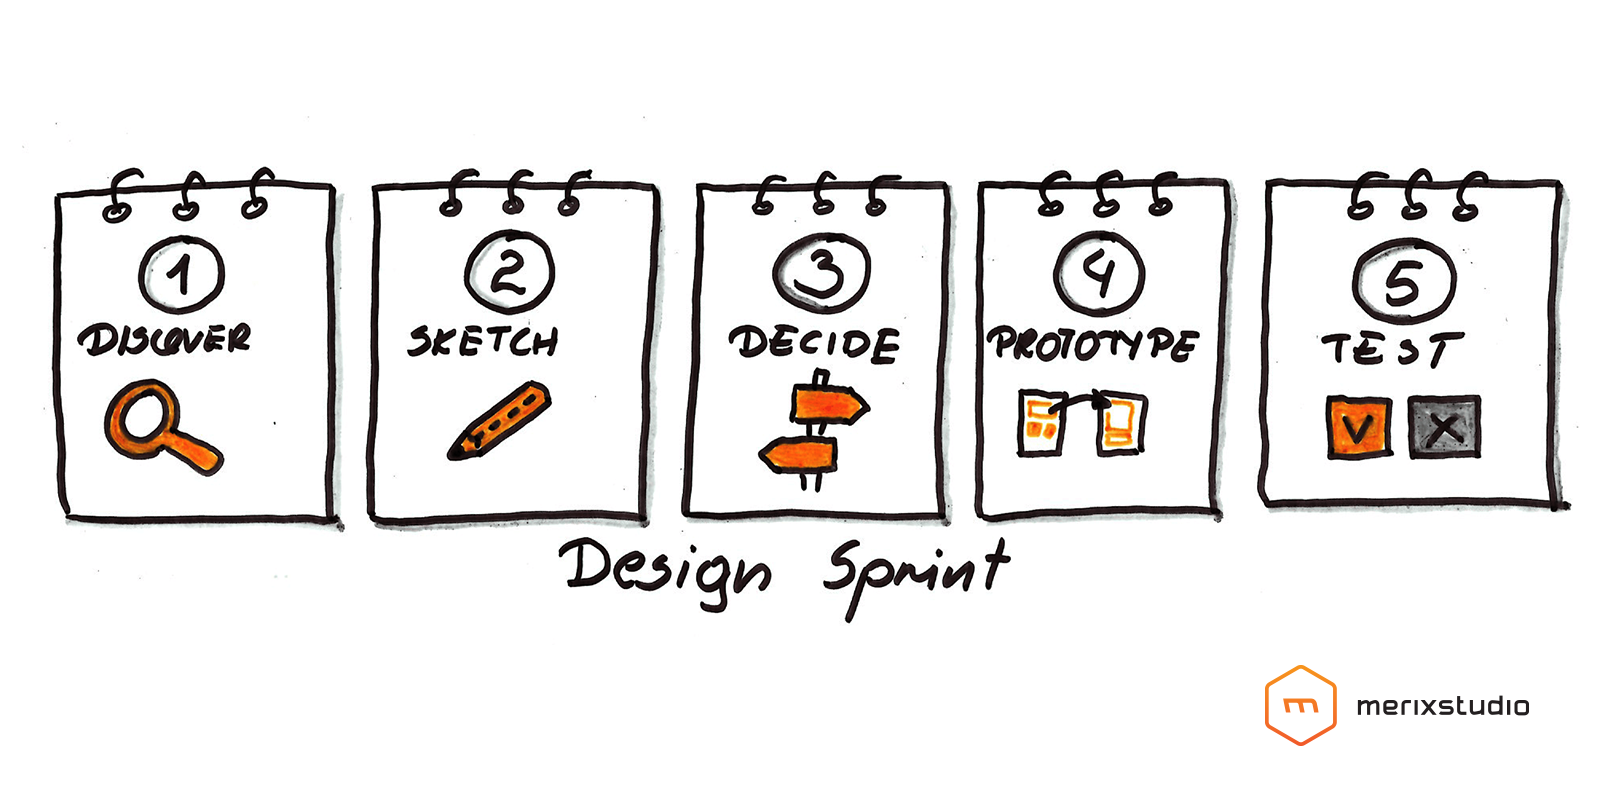 Prototyping is an essential part of design sprint